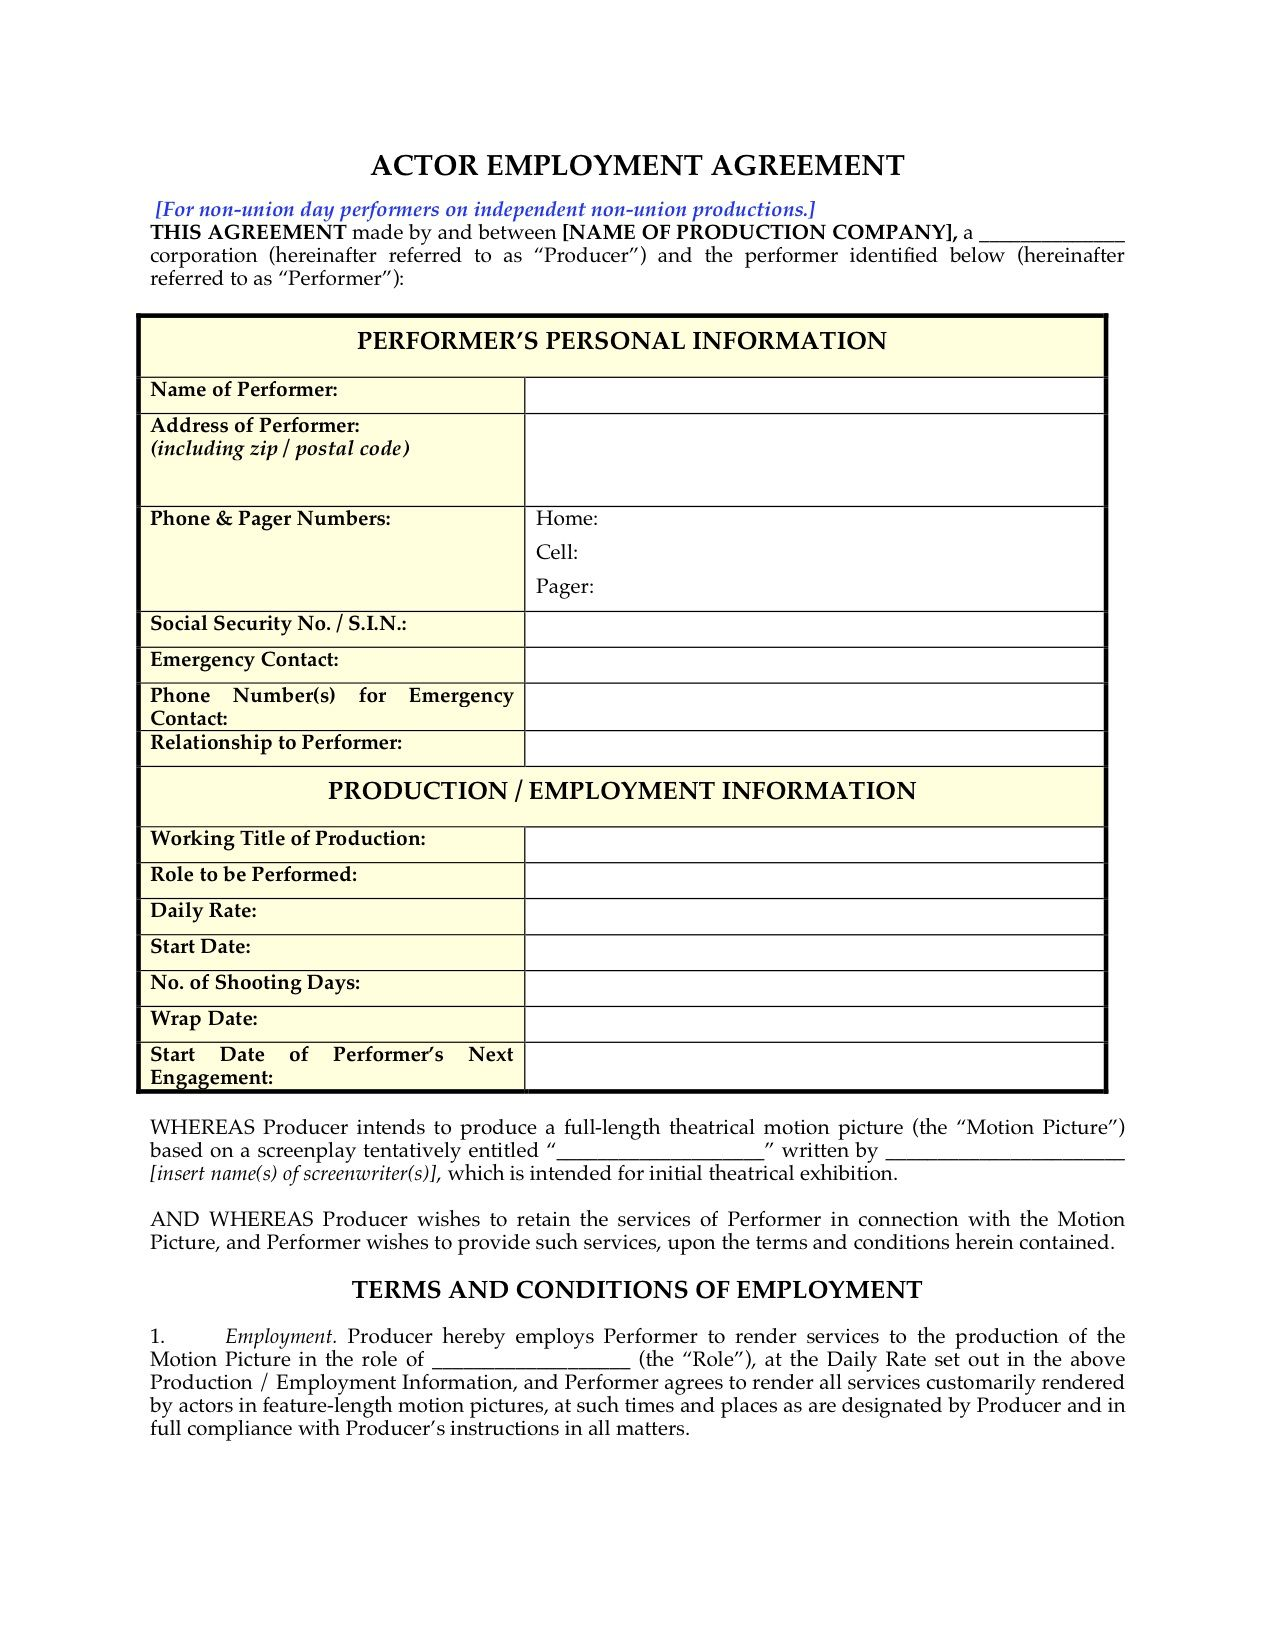 Actor Employment Agreement For NonUnion Day Performers HttpWww